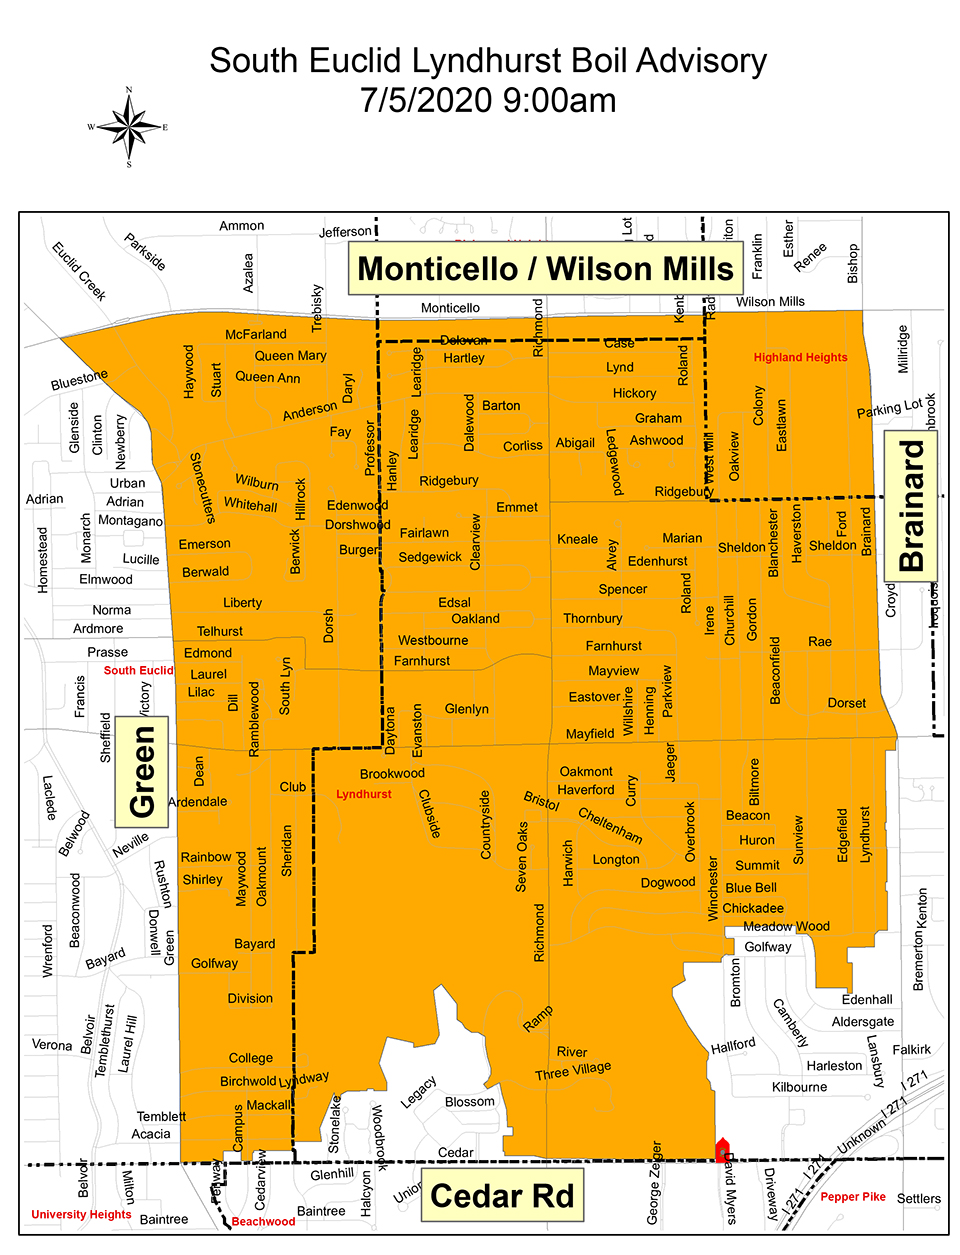 South Euclid Lyndhurst Boil Advisory Map for July 5th 2020 at 9:00 AM